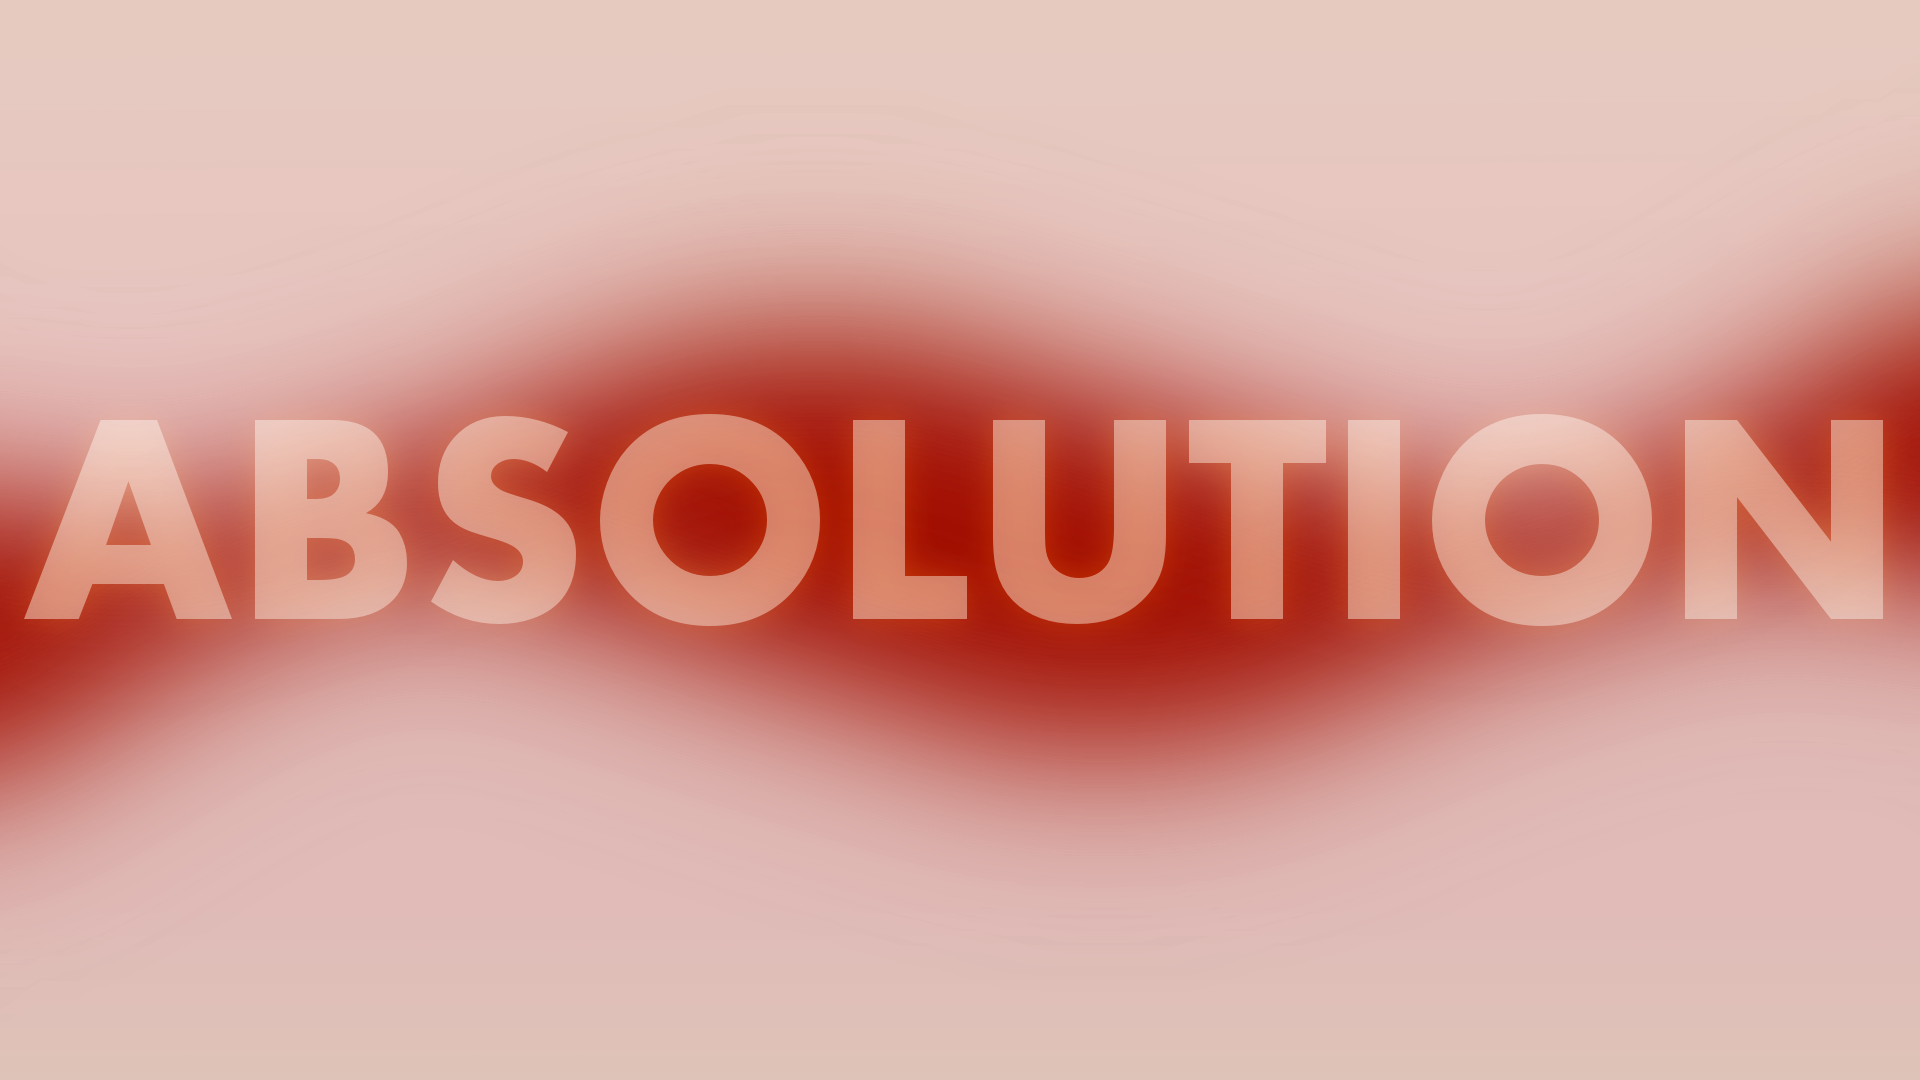 absolution_background-1920x1080